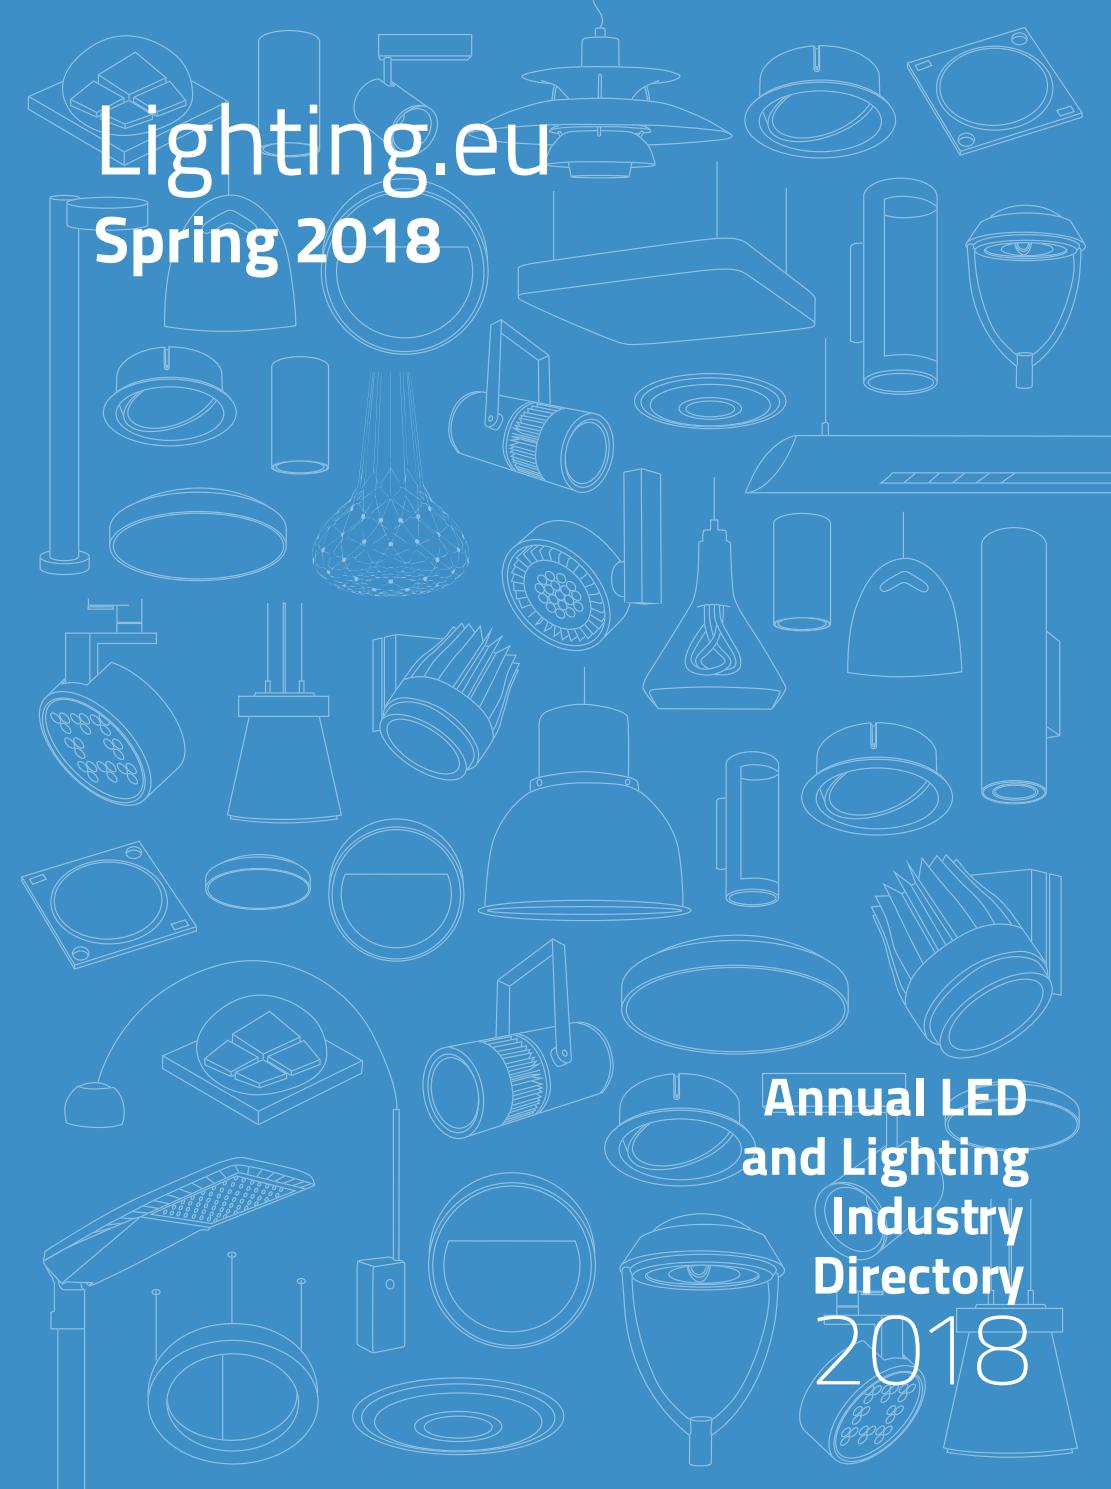 Lighting.EU Spring 2018 by LIGHTING.EU - issuu